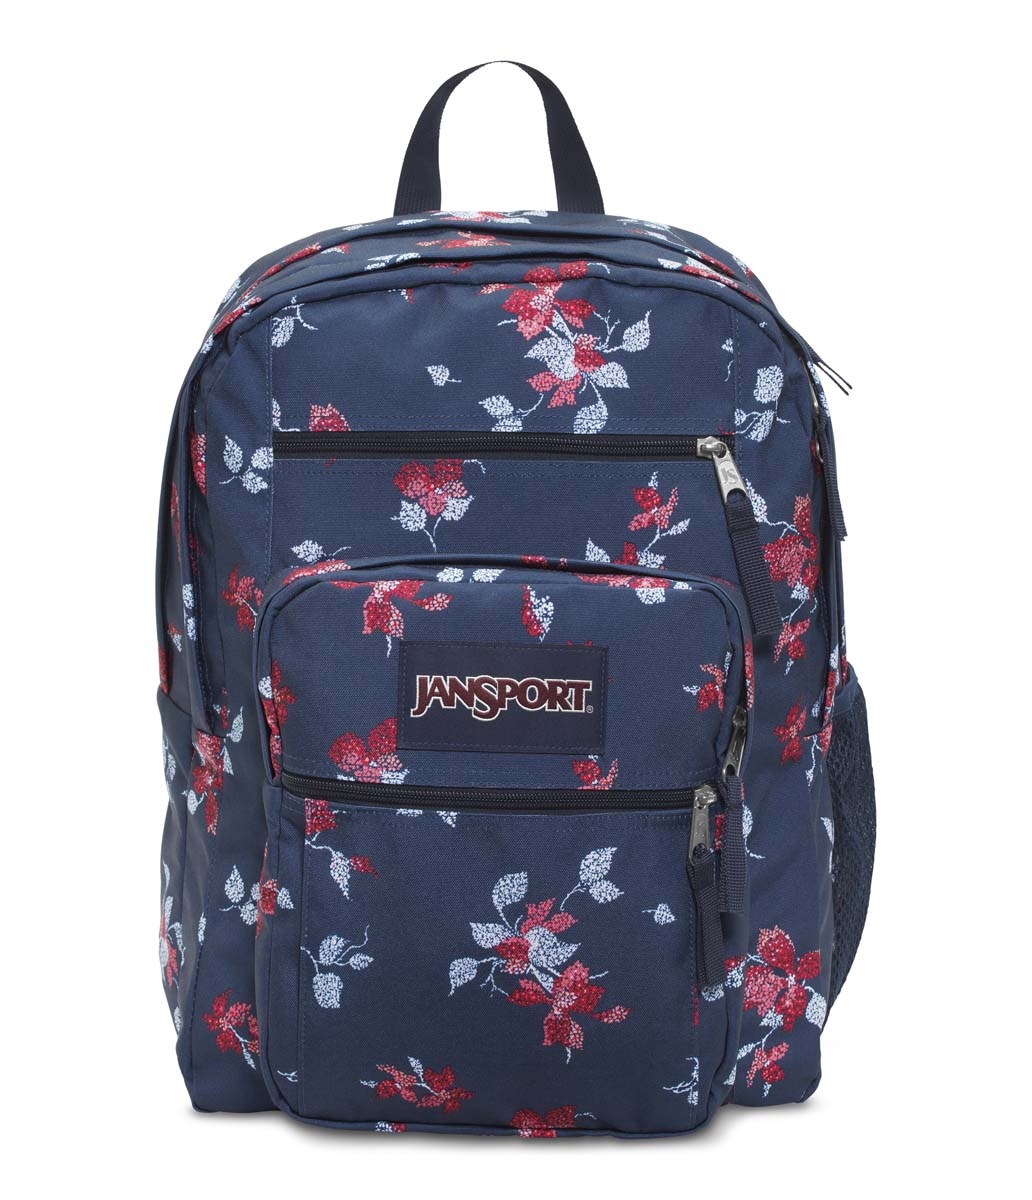 JanSport รุ่น BIG STUDENT - NAVY SWEET BLOSSOM